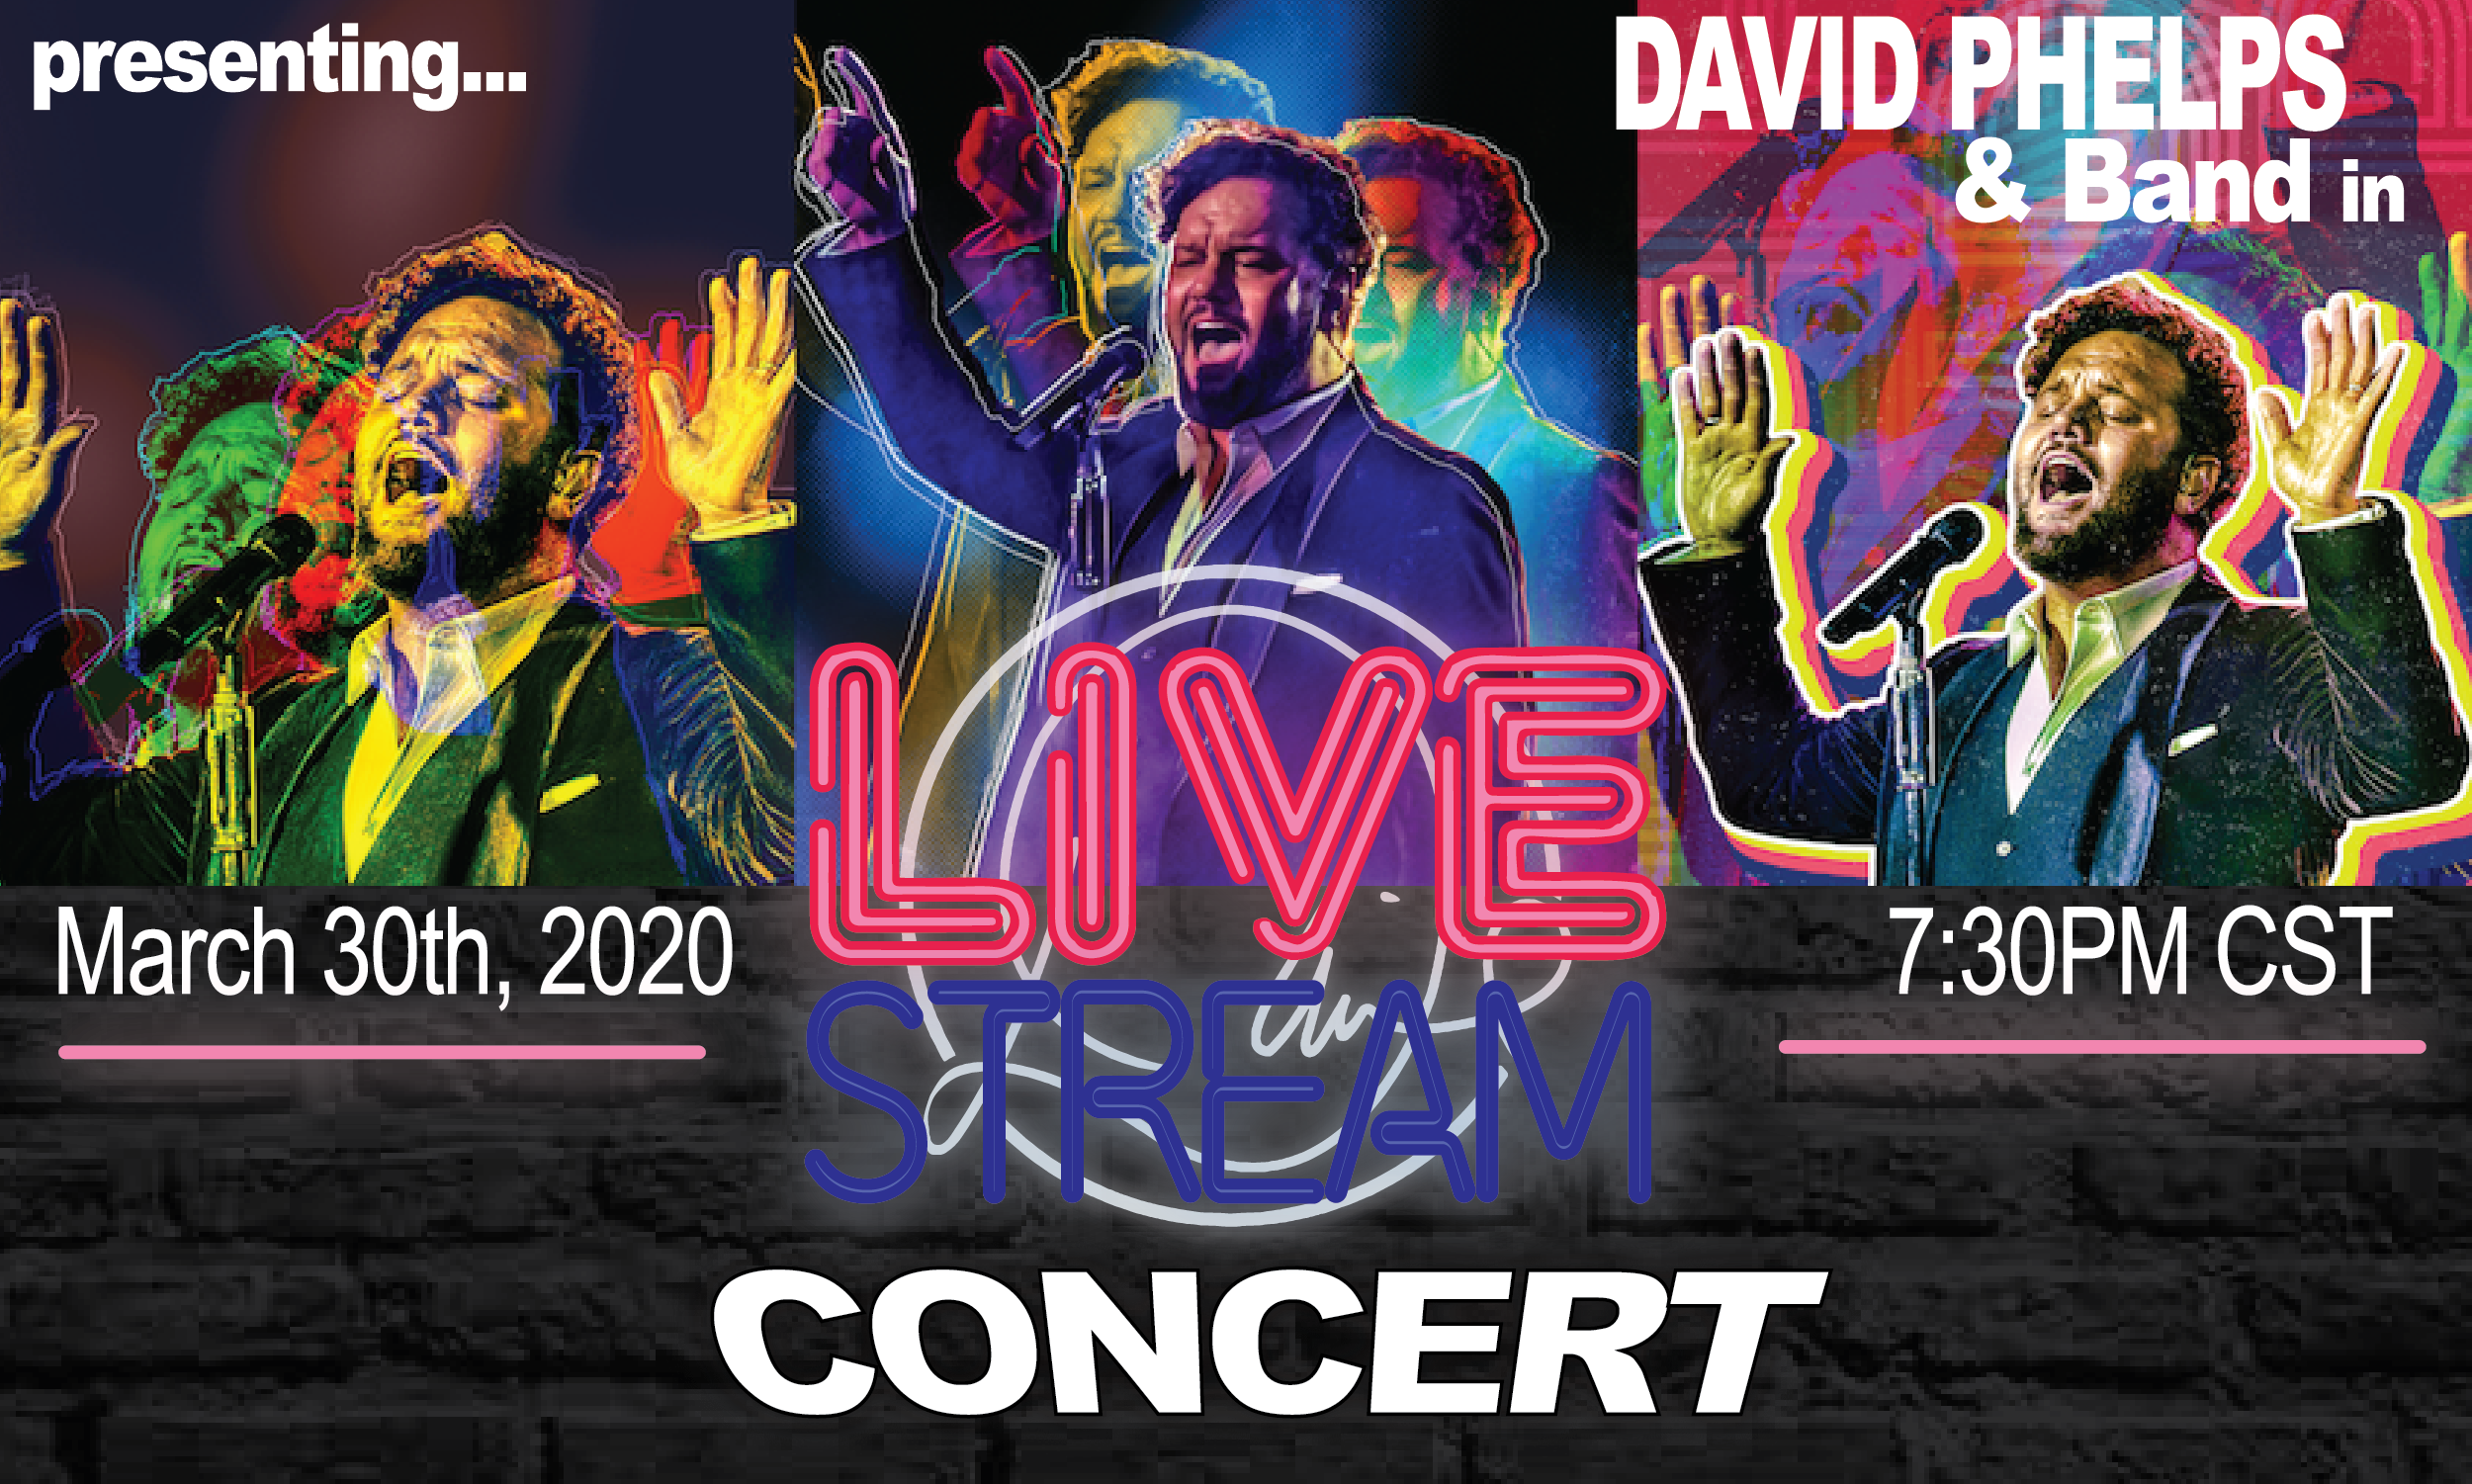 Live Stream Concert March 30th, 2020